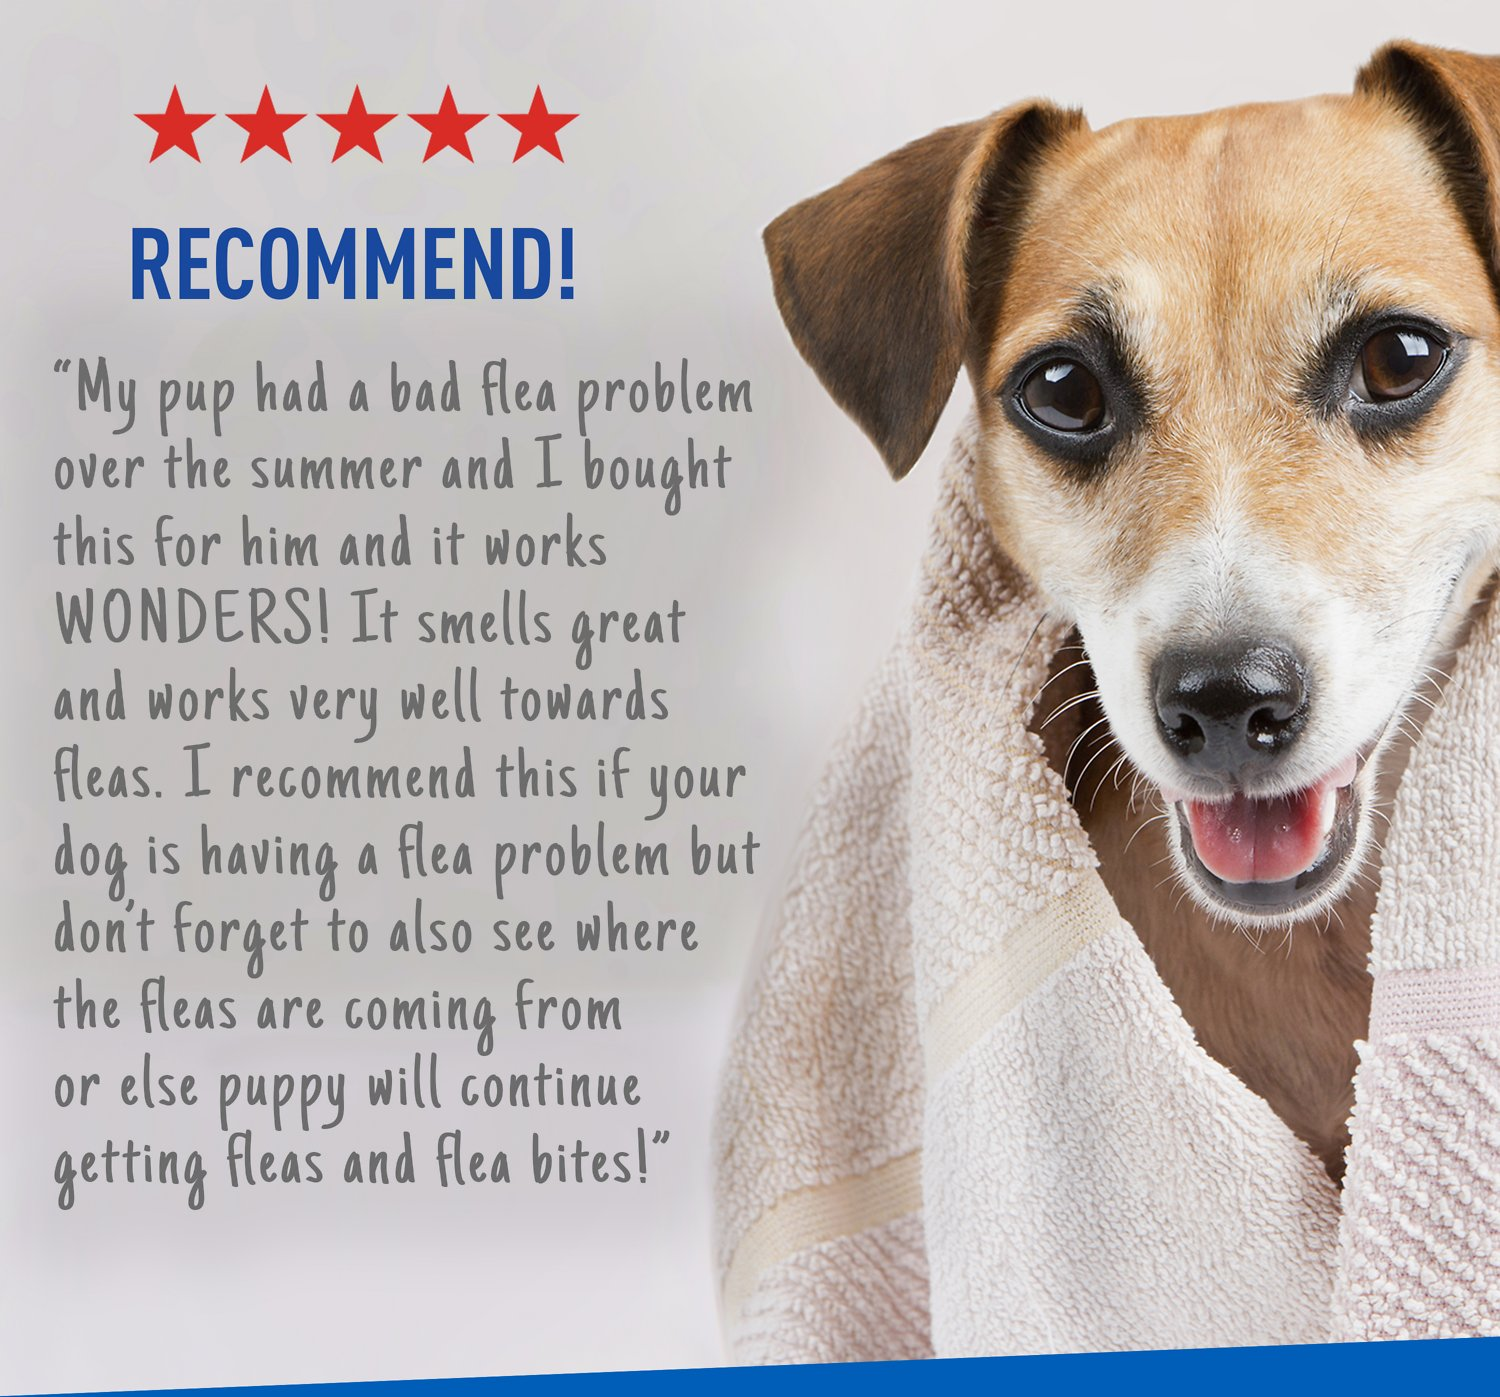 How To Wash Cat With Adams Flea And Tick Shampoo